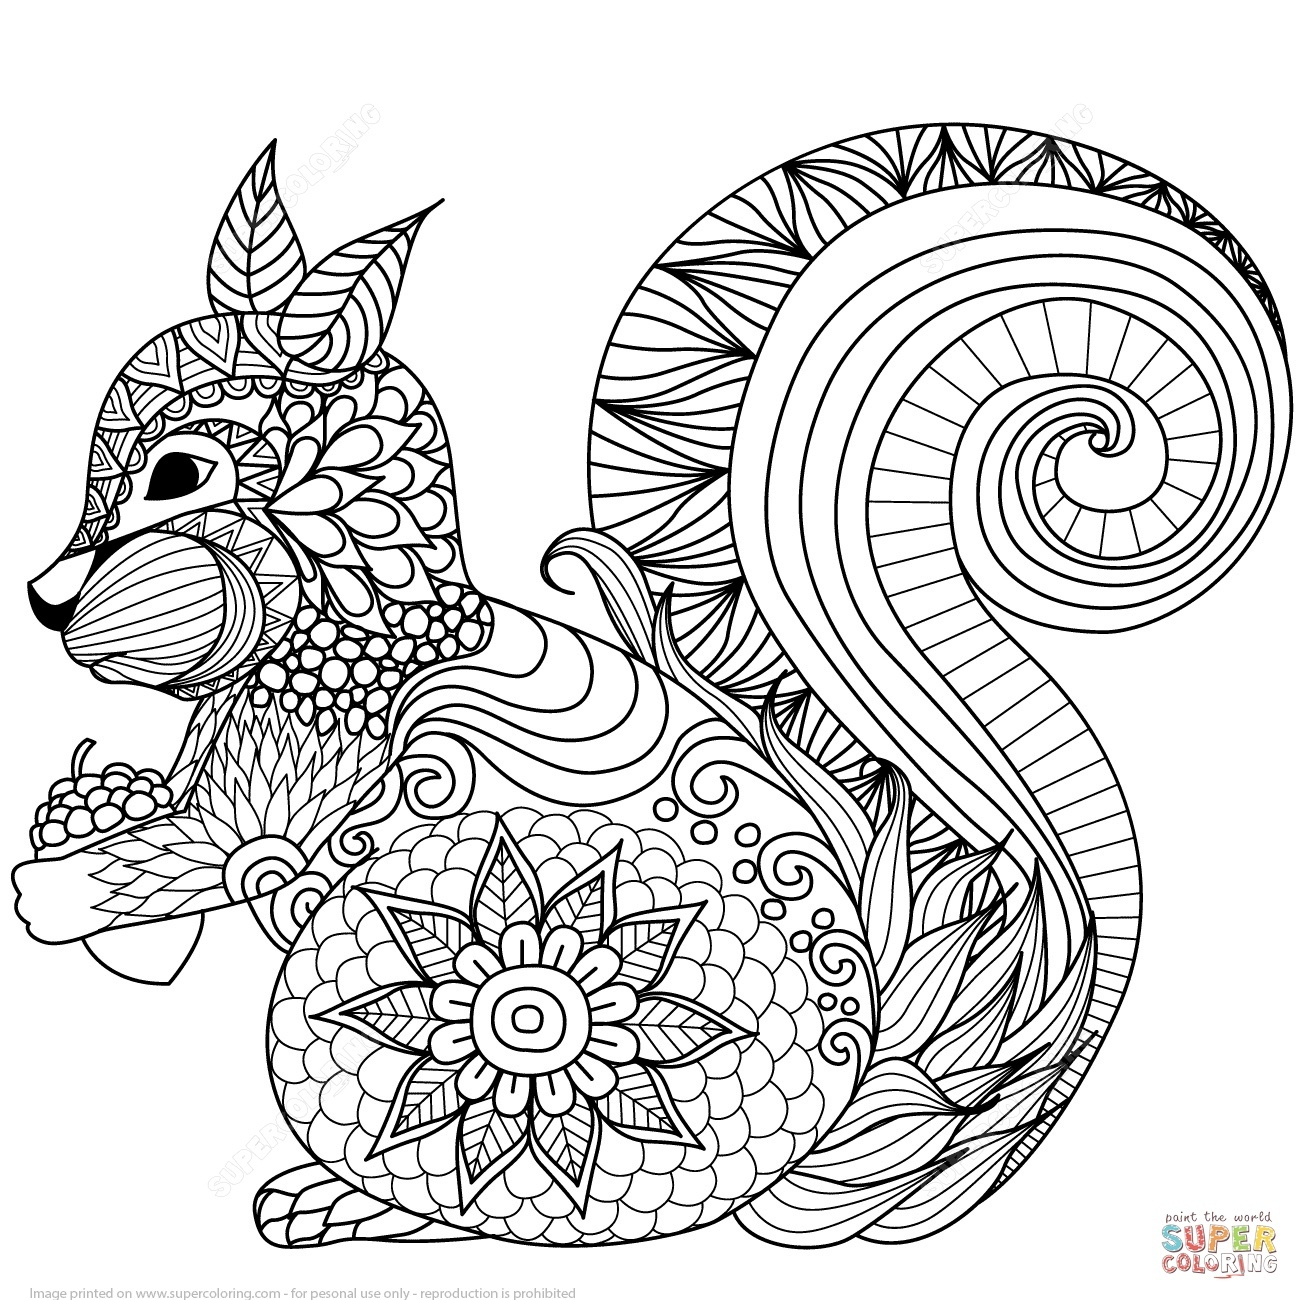 Animal Coloring Pages - Zentangle Animal Coloring Pages At - Free Printable Animal Coloring Pages